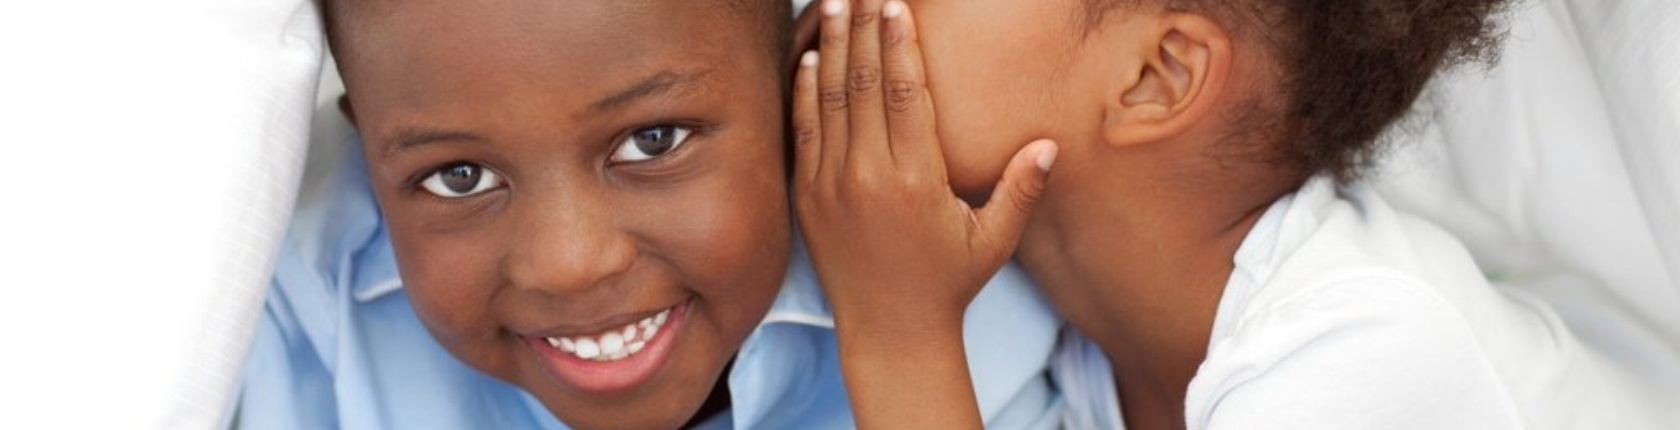 Cute little girl whispering something to her brother under the cover-932272-edited.jpeg